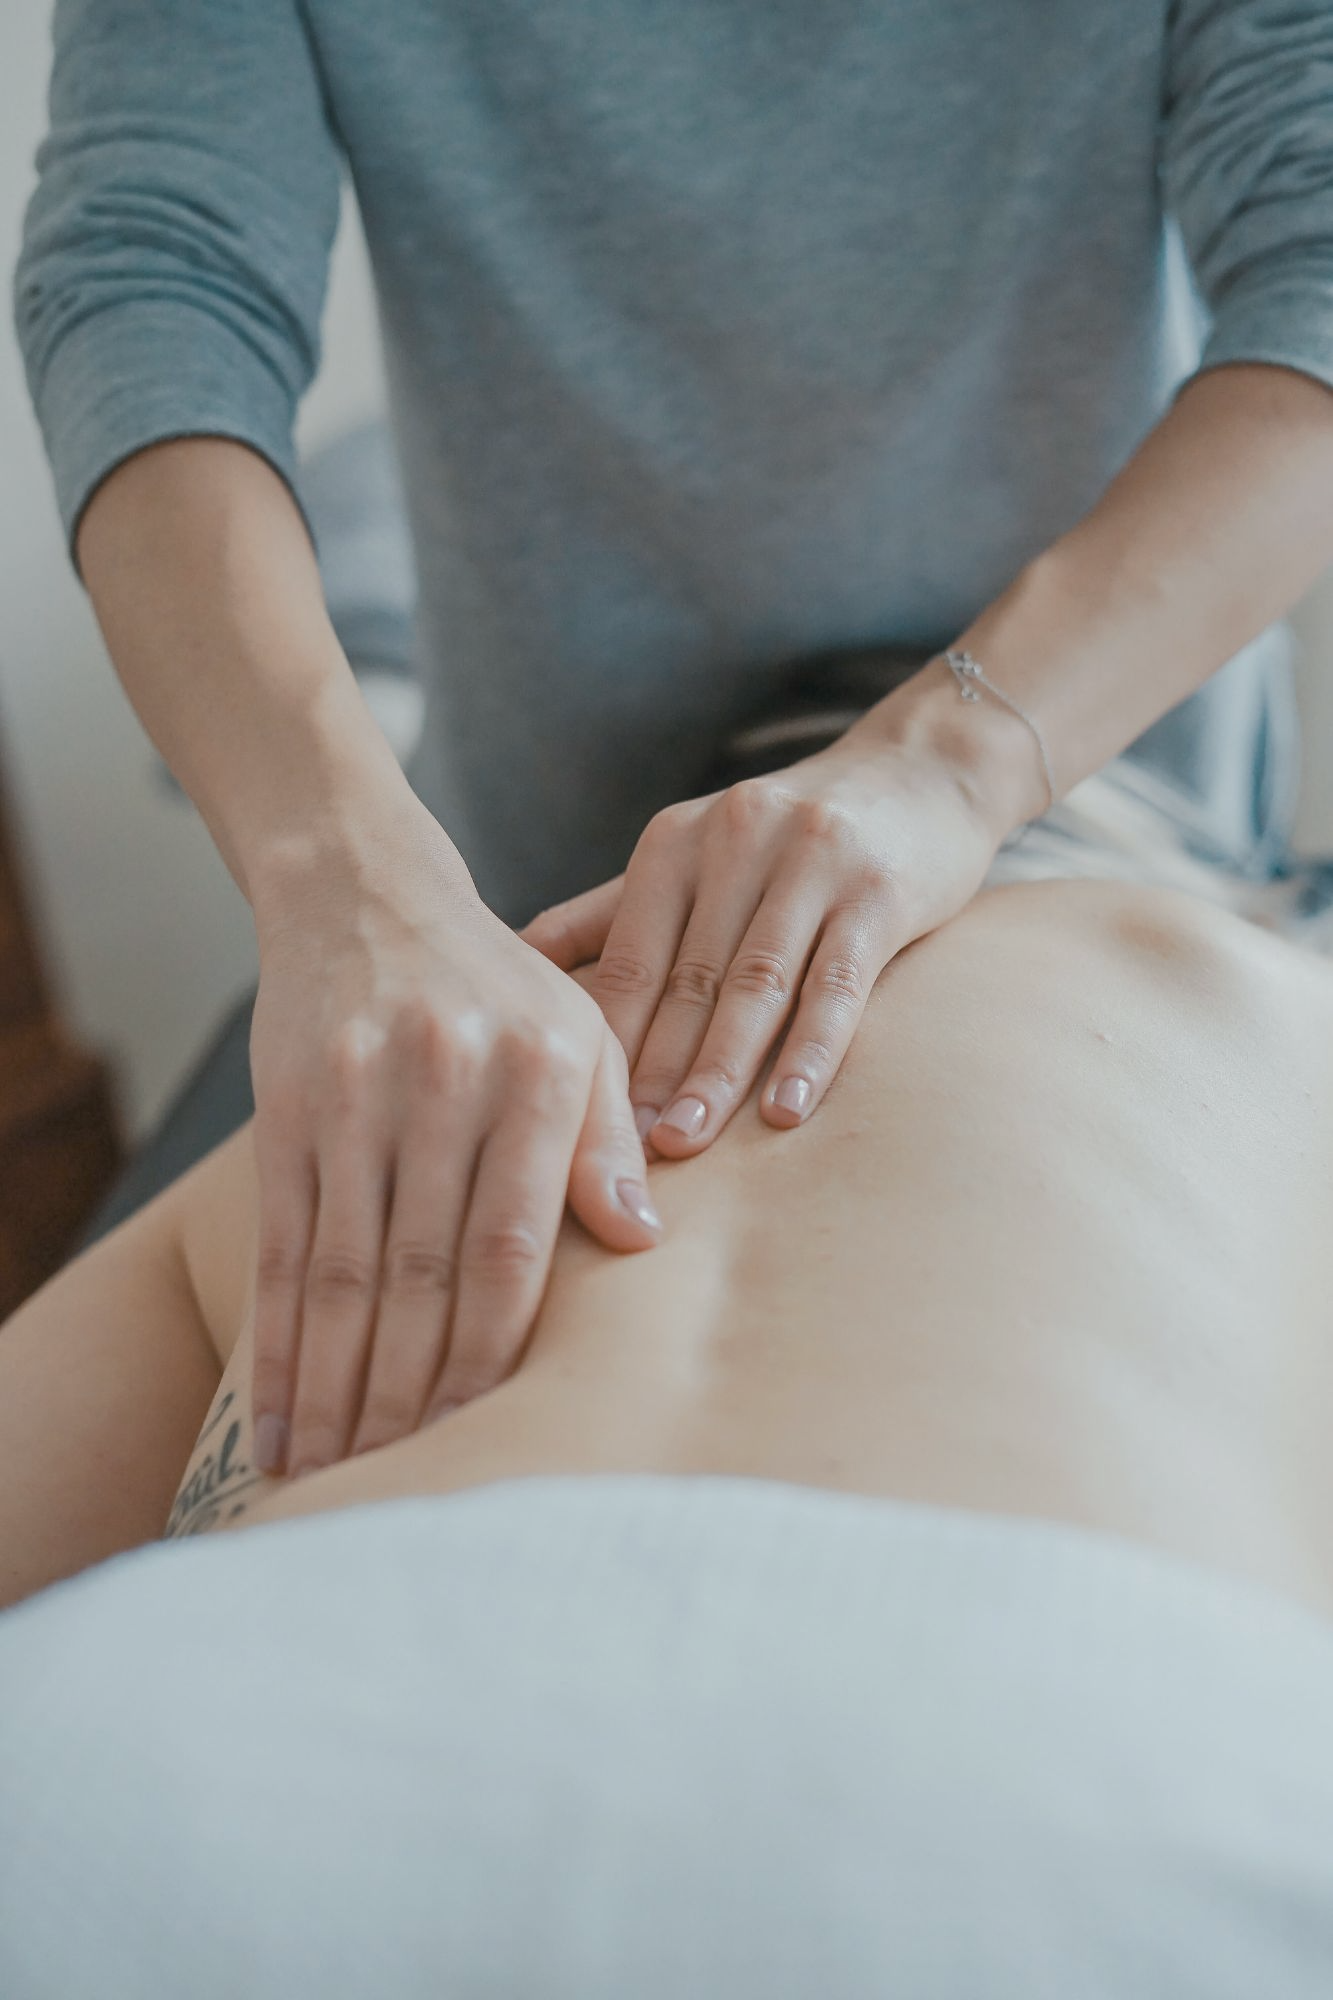 Calico Pregnancy Massage Other Massage Therapies Offered